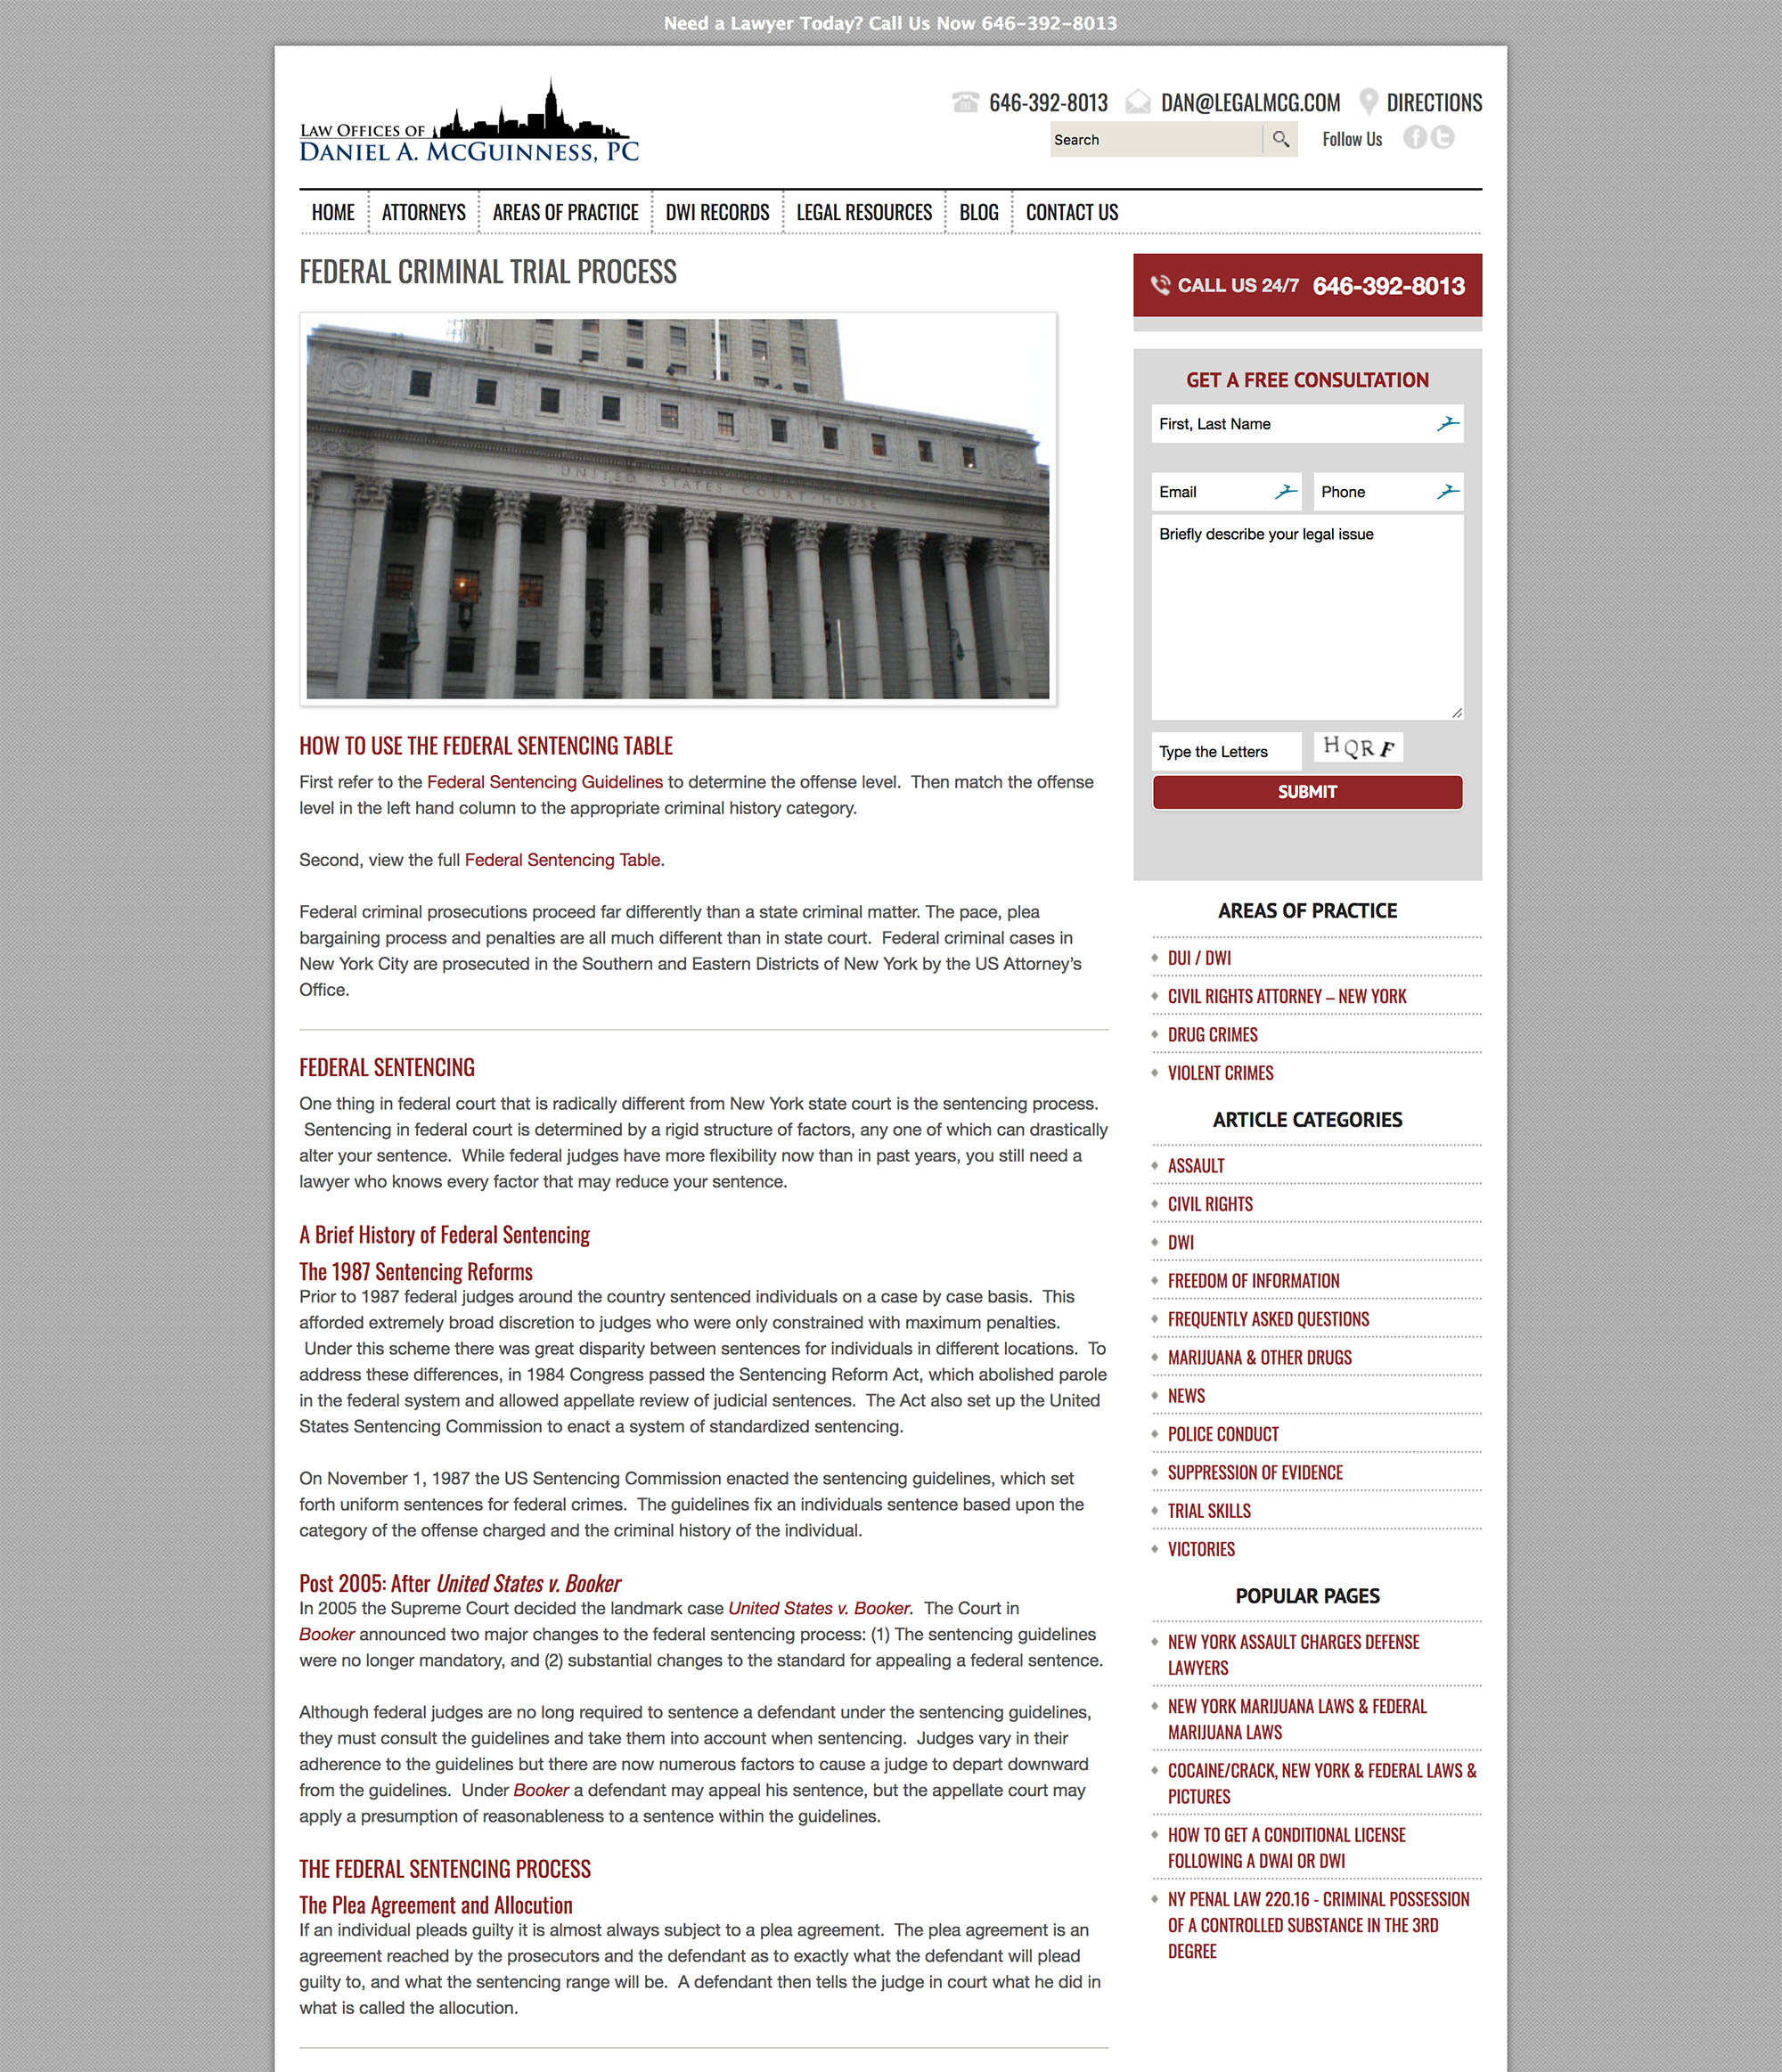 new-york-law-firm-web-design